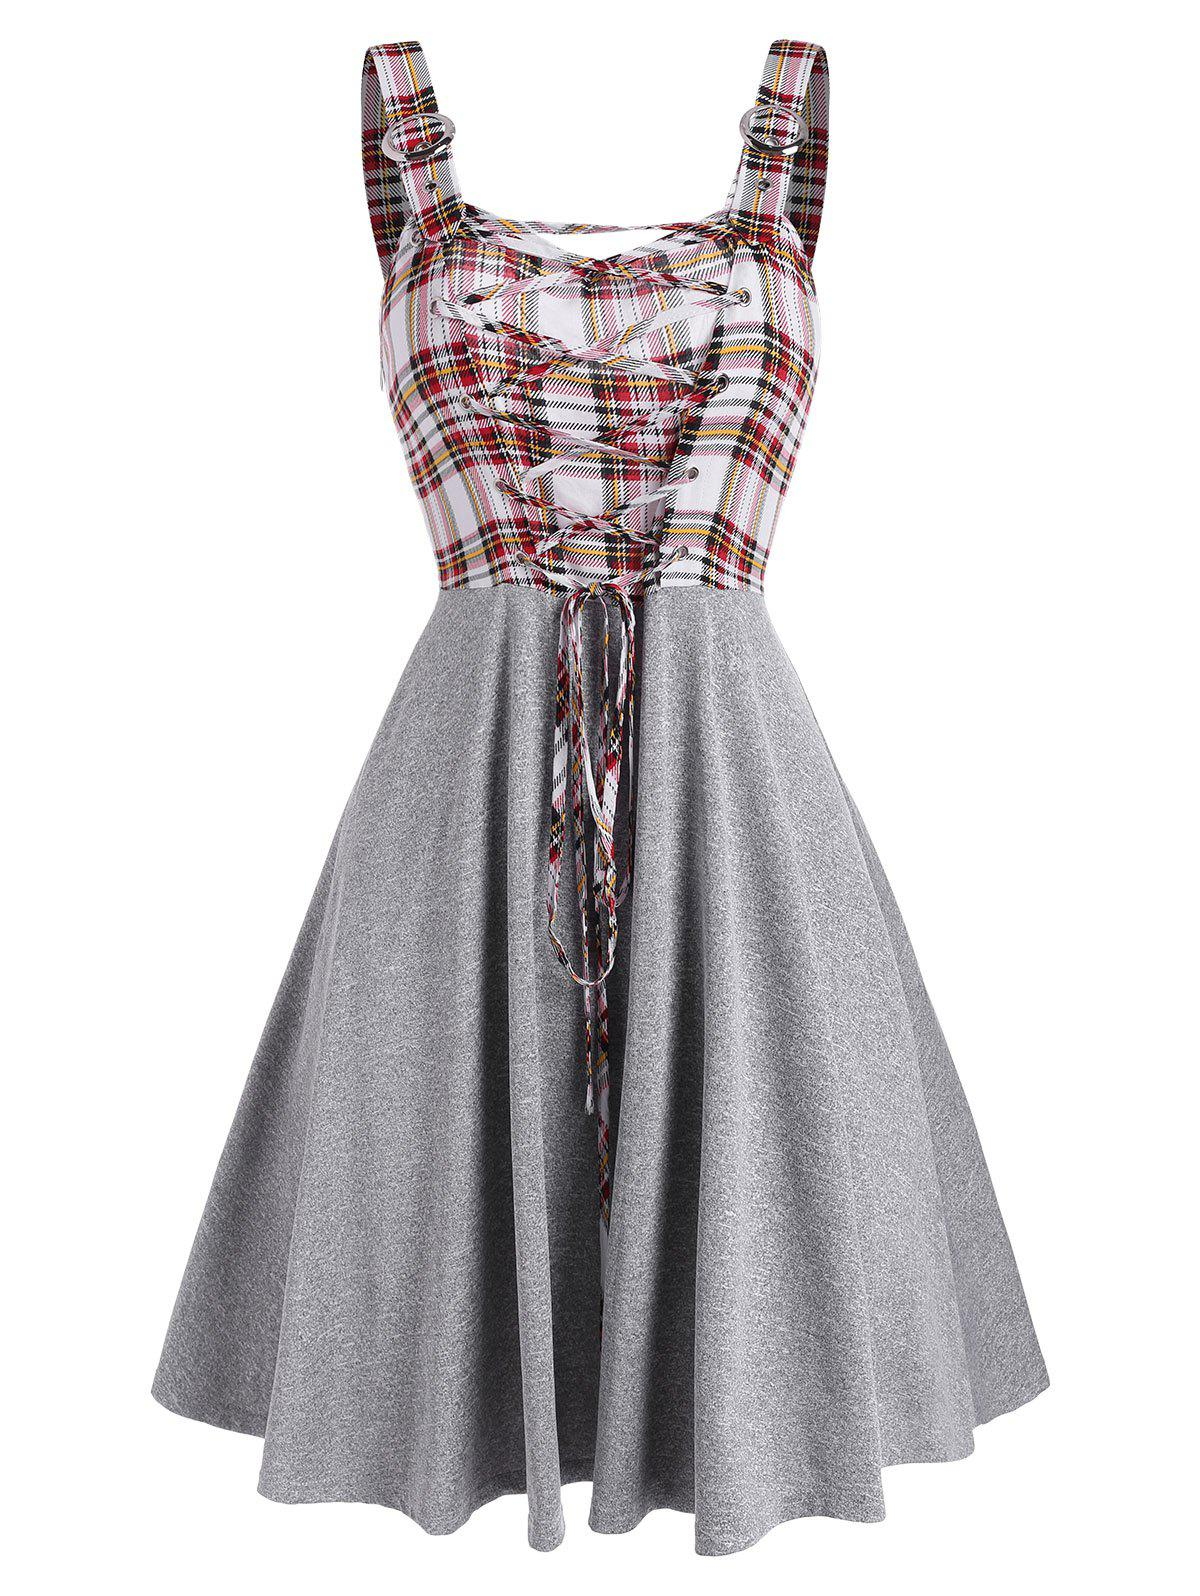 Store Sleeveless Plaid Print Lace-up Buckle Strap Dress